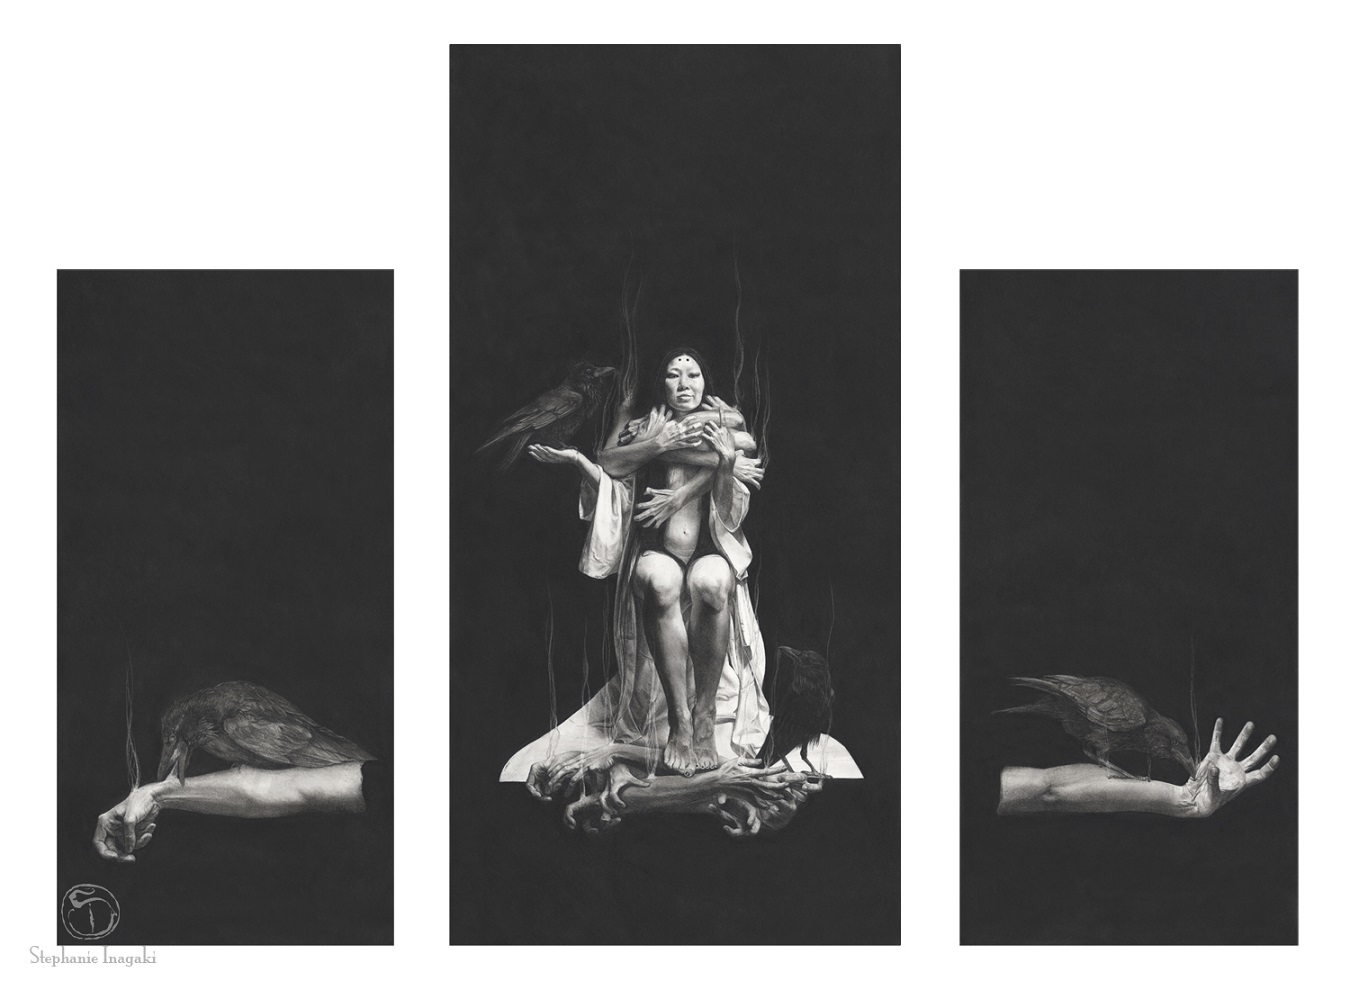 Stephanie Inagaki/The Exorcism of Disembodied Souls and The exorcism—Deamonaster 1 & 2 (triptych), 2014